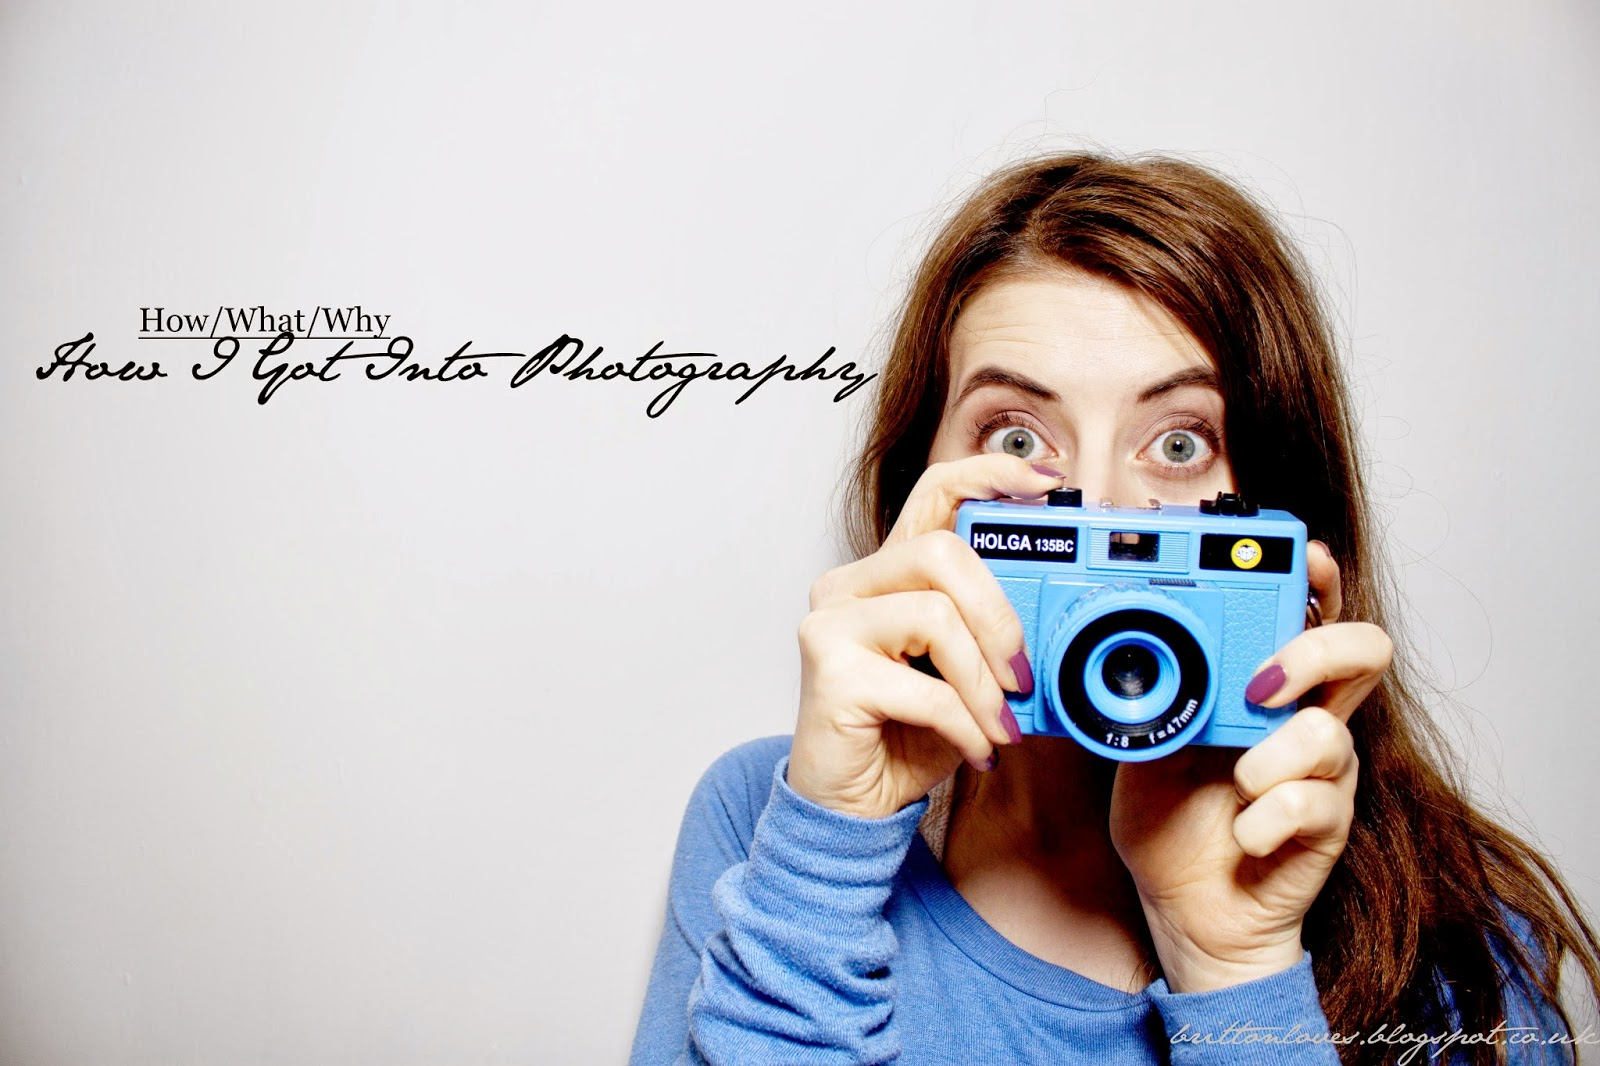 HOW WHAT WHY : HOW I GOT INTO PHOTOGRAPHY